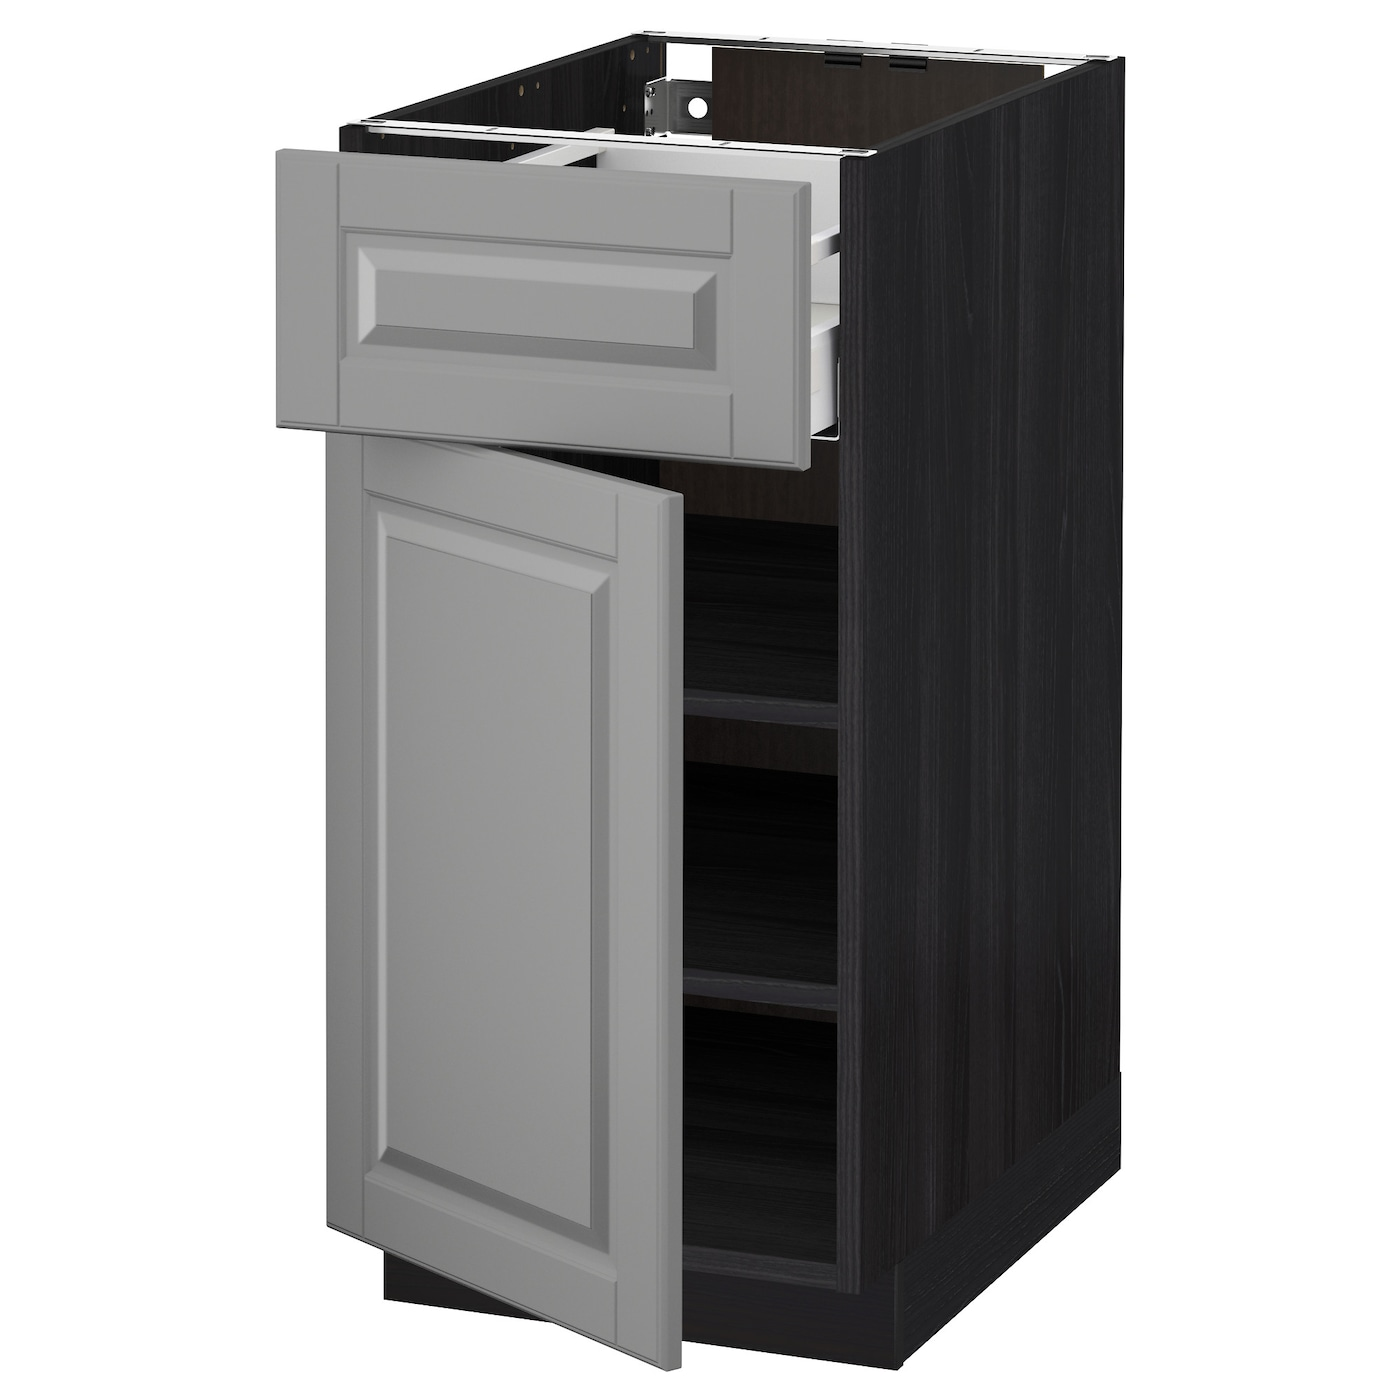 metod maximera base cabinet with drawer door black bodbyn grey 40 x 60 cm ikea. Black Bedroom Furniture Sets. Home Design Ideas